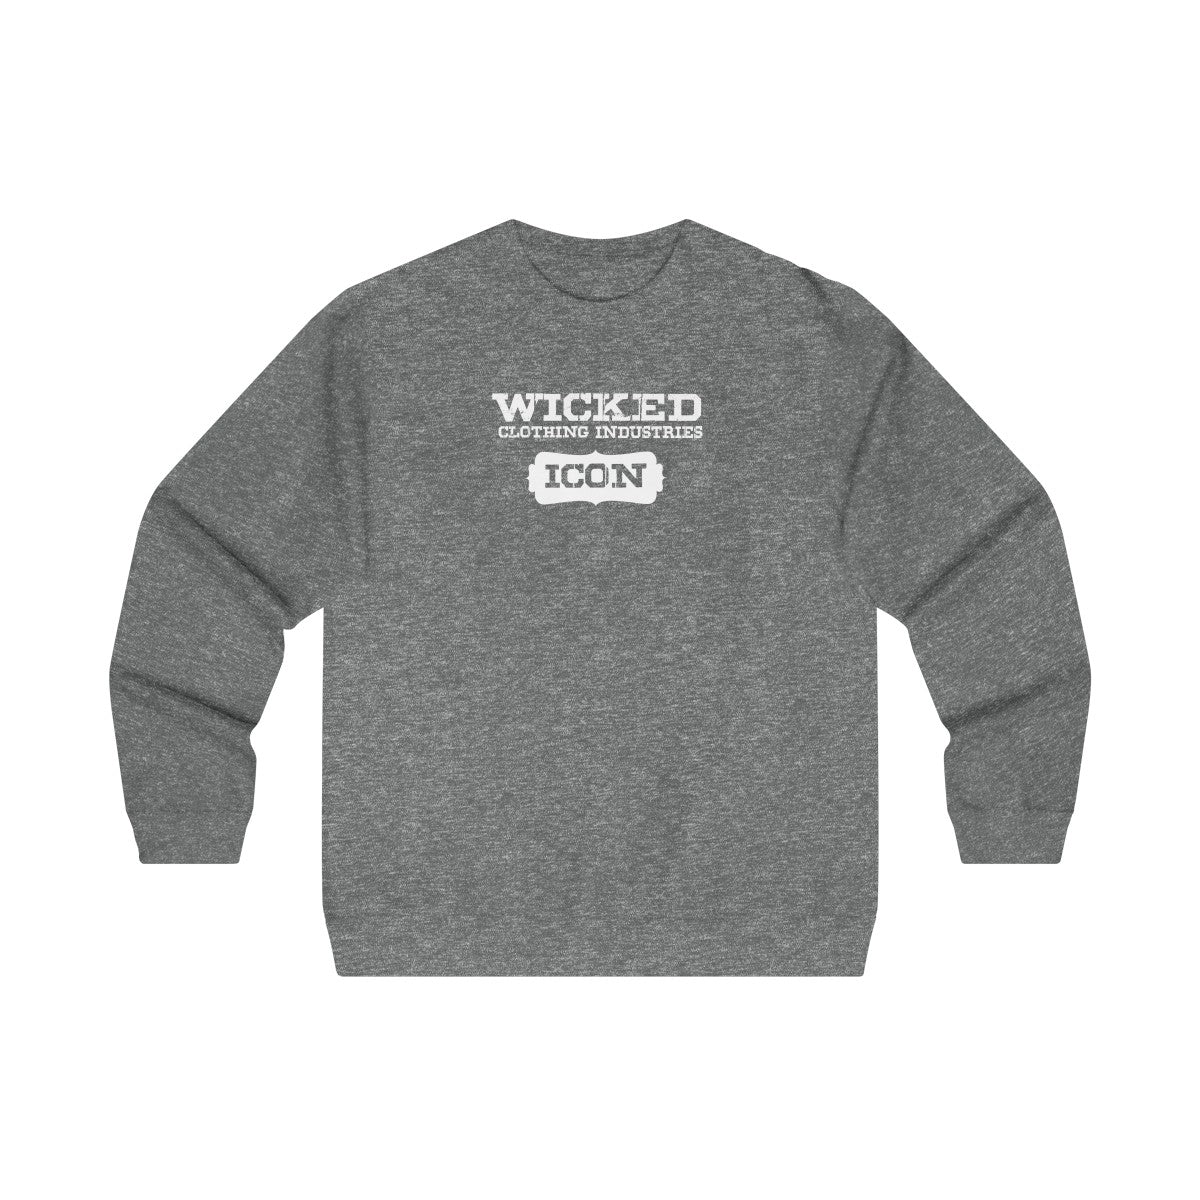 ICON/White/Men's Midweight Crewneck Sweatshirt